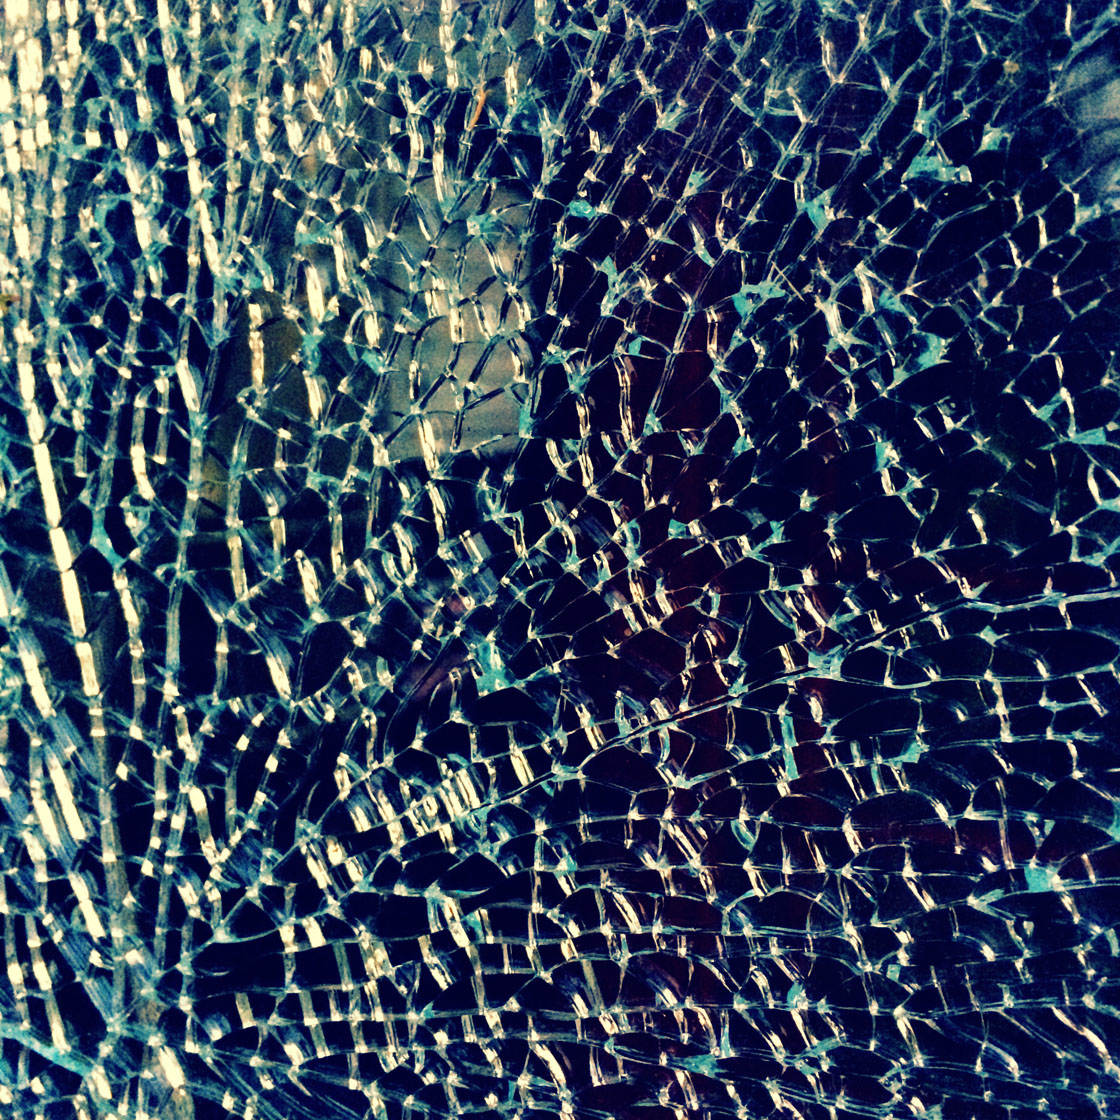 Abstract iPhone Photos 27 no script